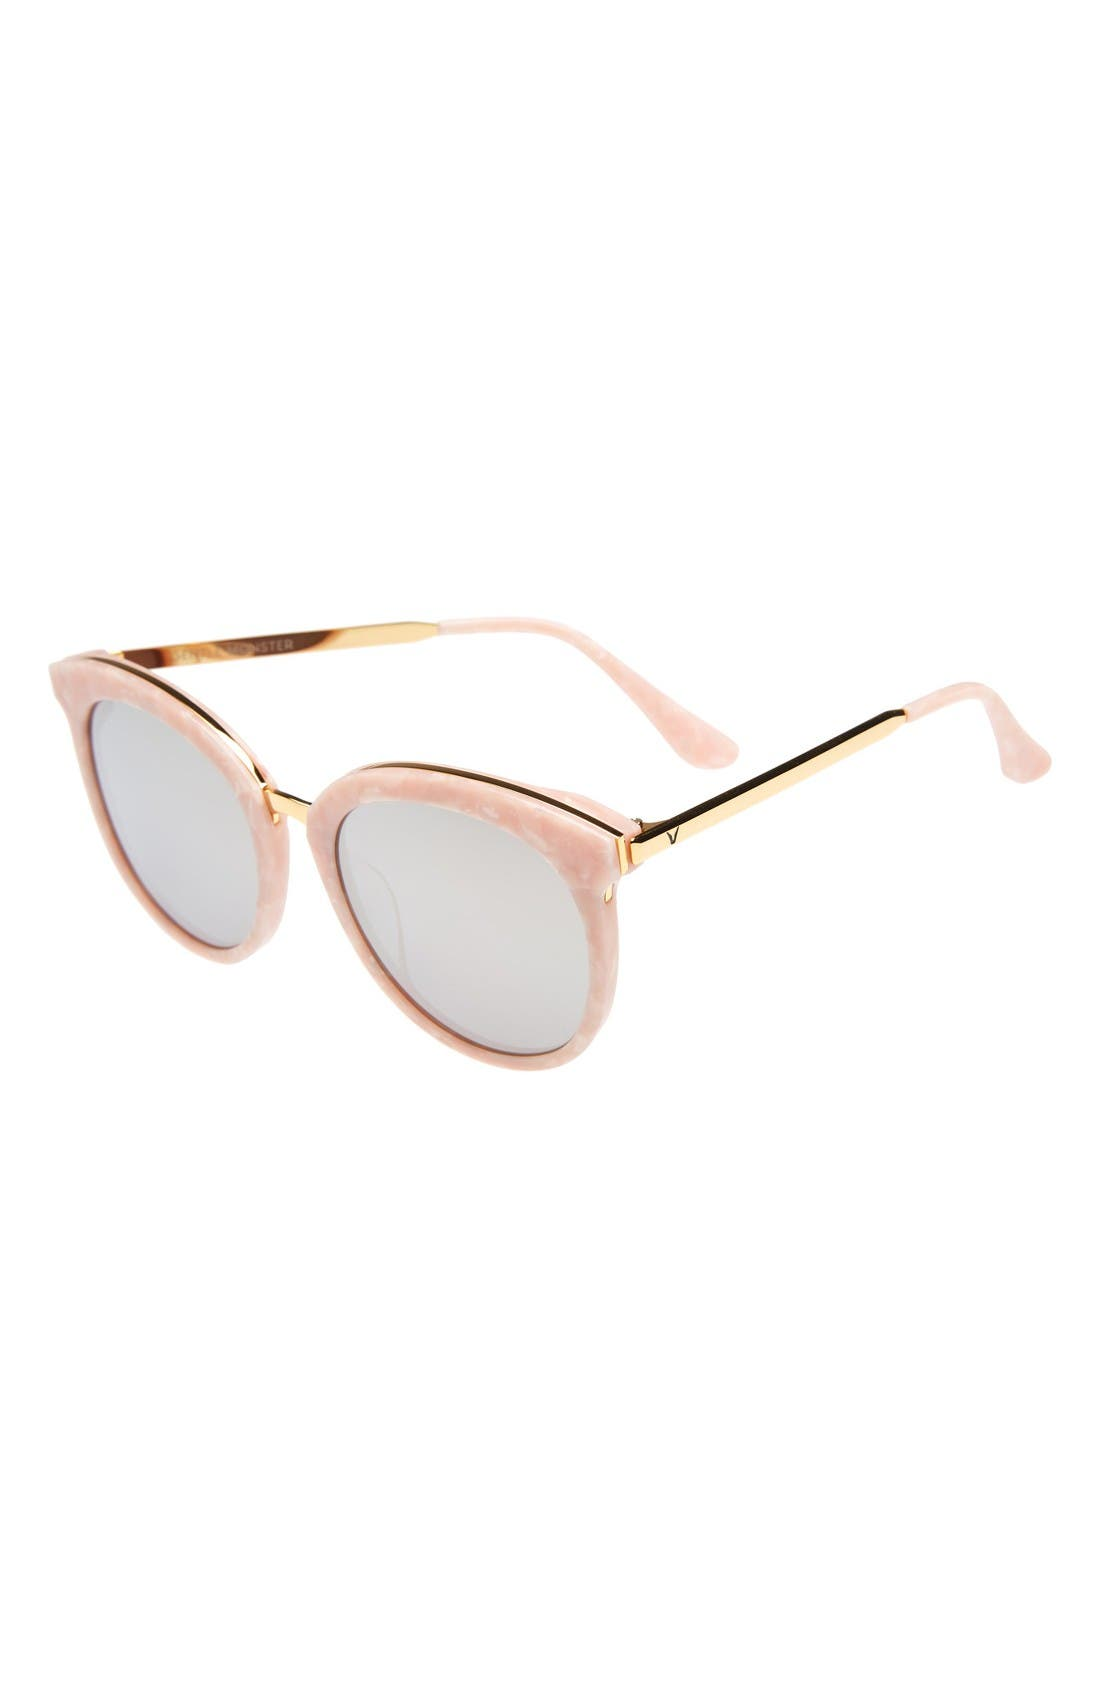 Lovesome 56mm Cat Eye Sunglasses,                             Alternate thumbnail 2, color,                             Light Pink/Gold